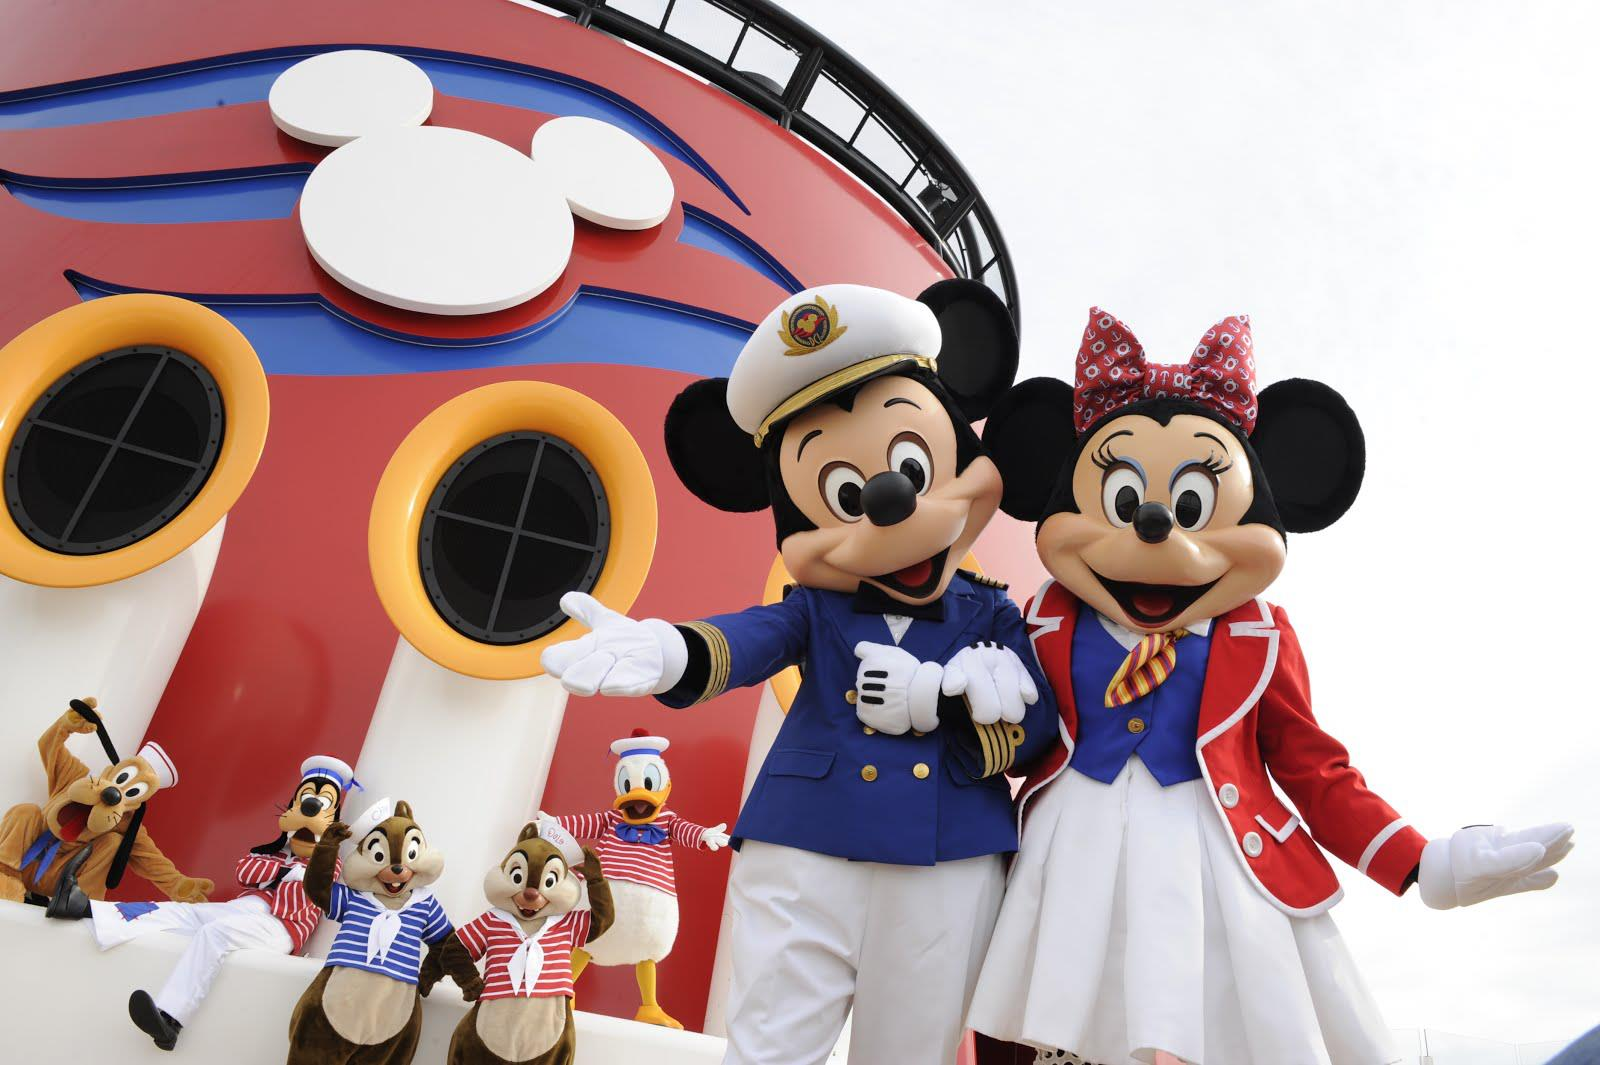 Explore special offers featuring discounts and deals on upcoming Disney Cruise Line vacations